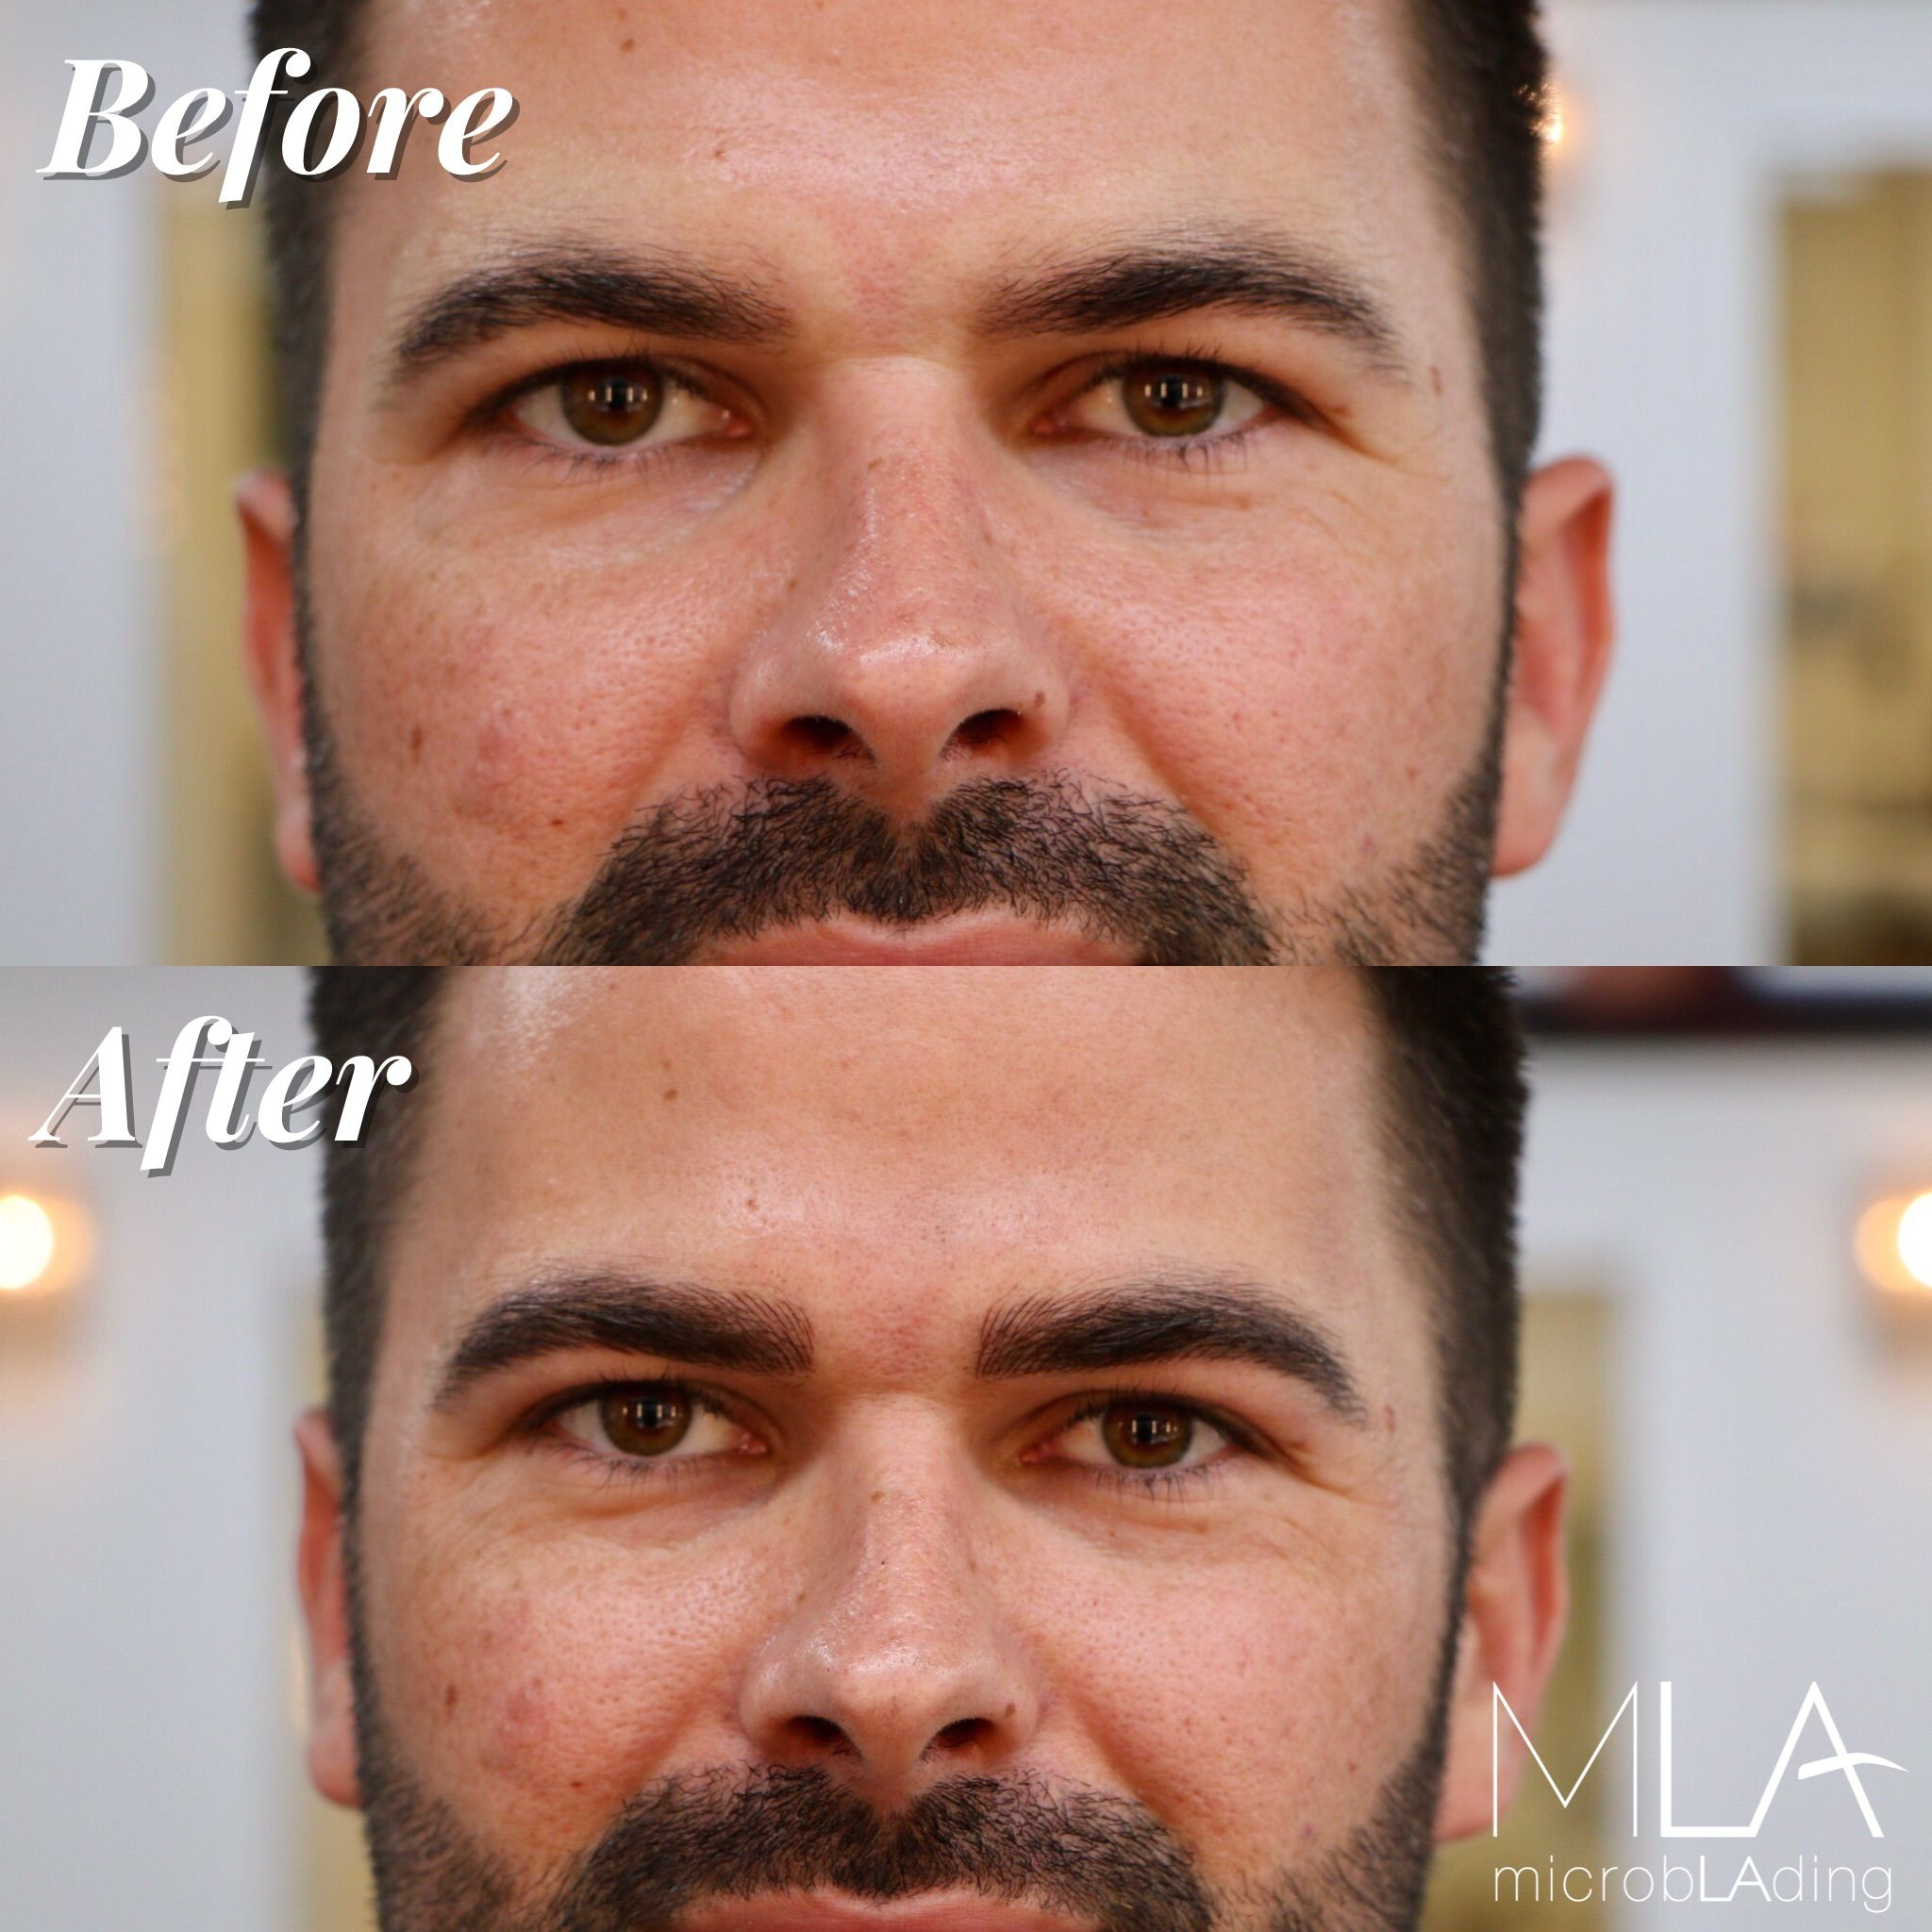 Microblading For Men Microblading Hair Strokes Can Look Very